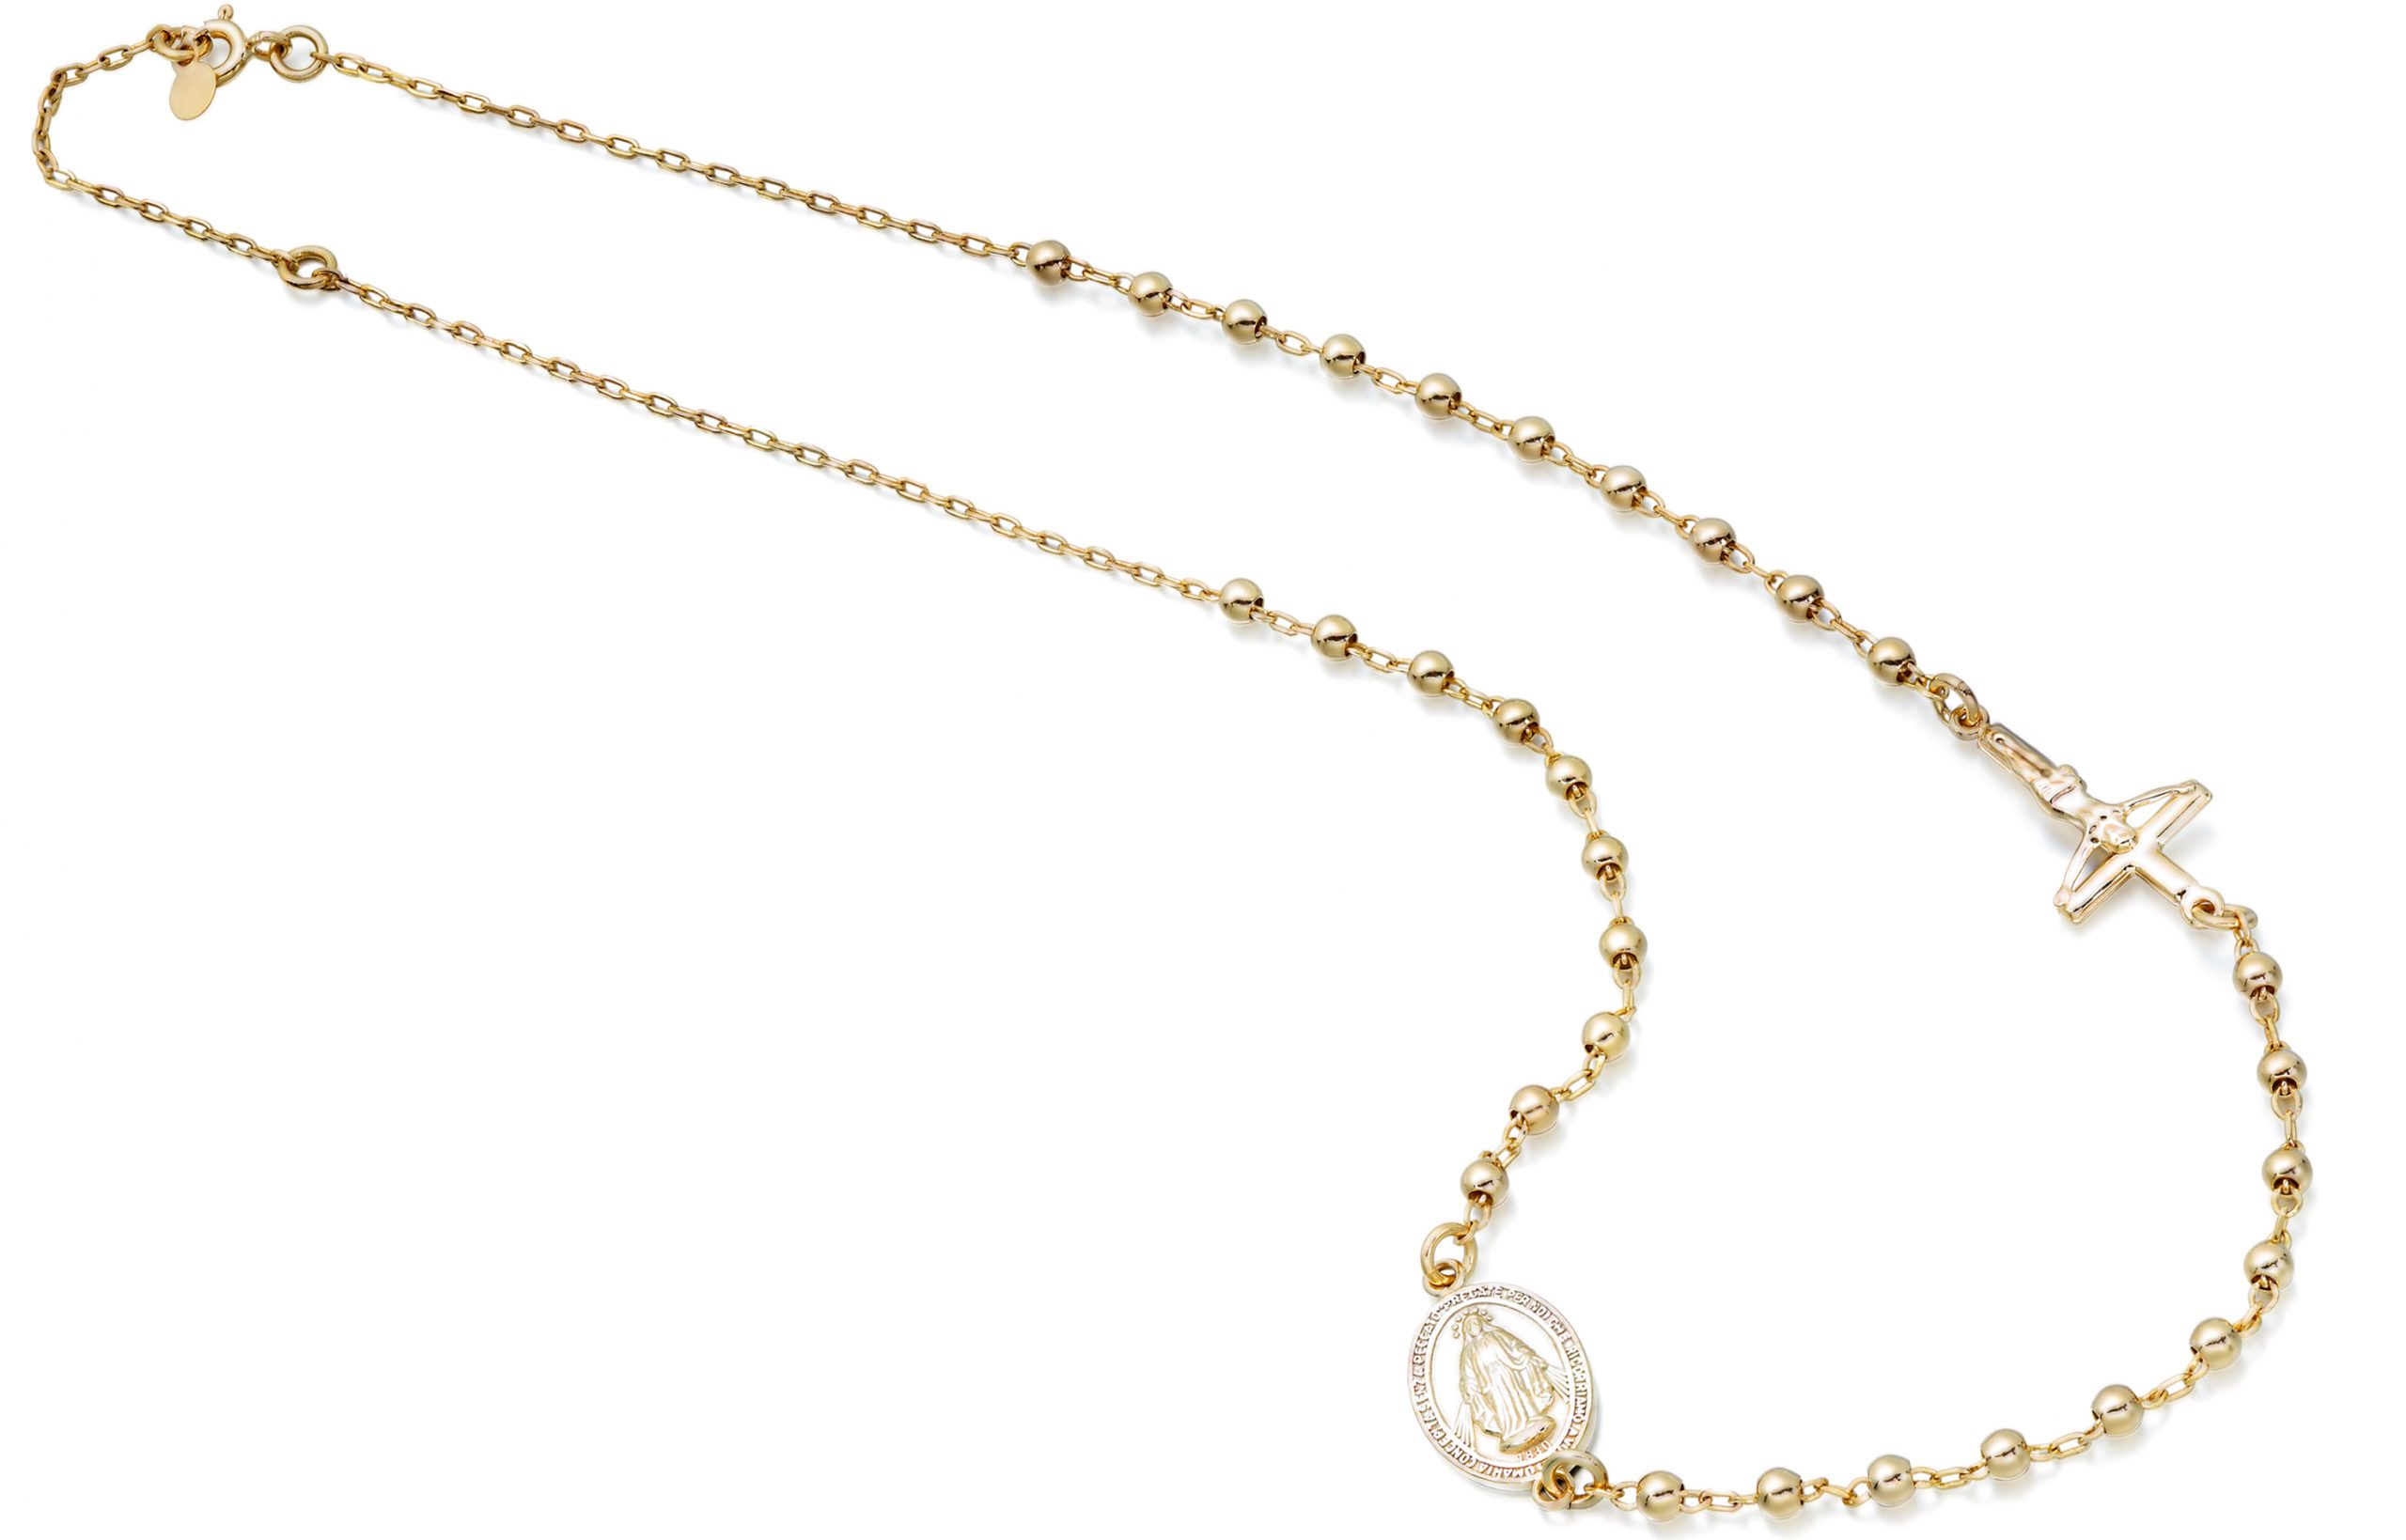 9ct Gold Rosary Necklace - RBN2